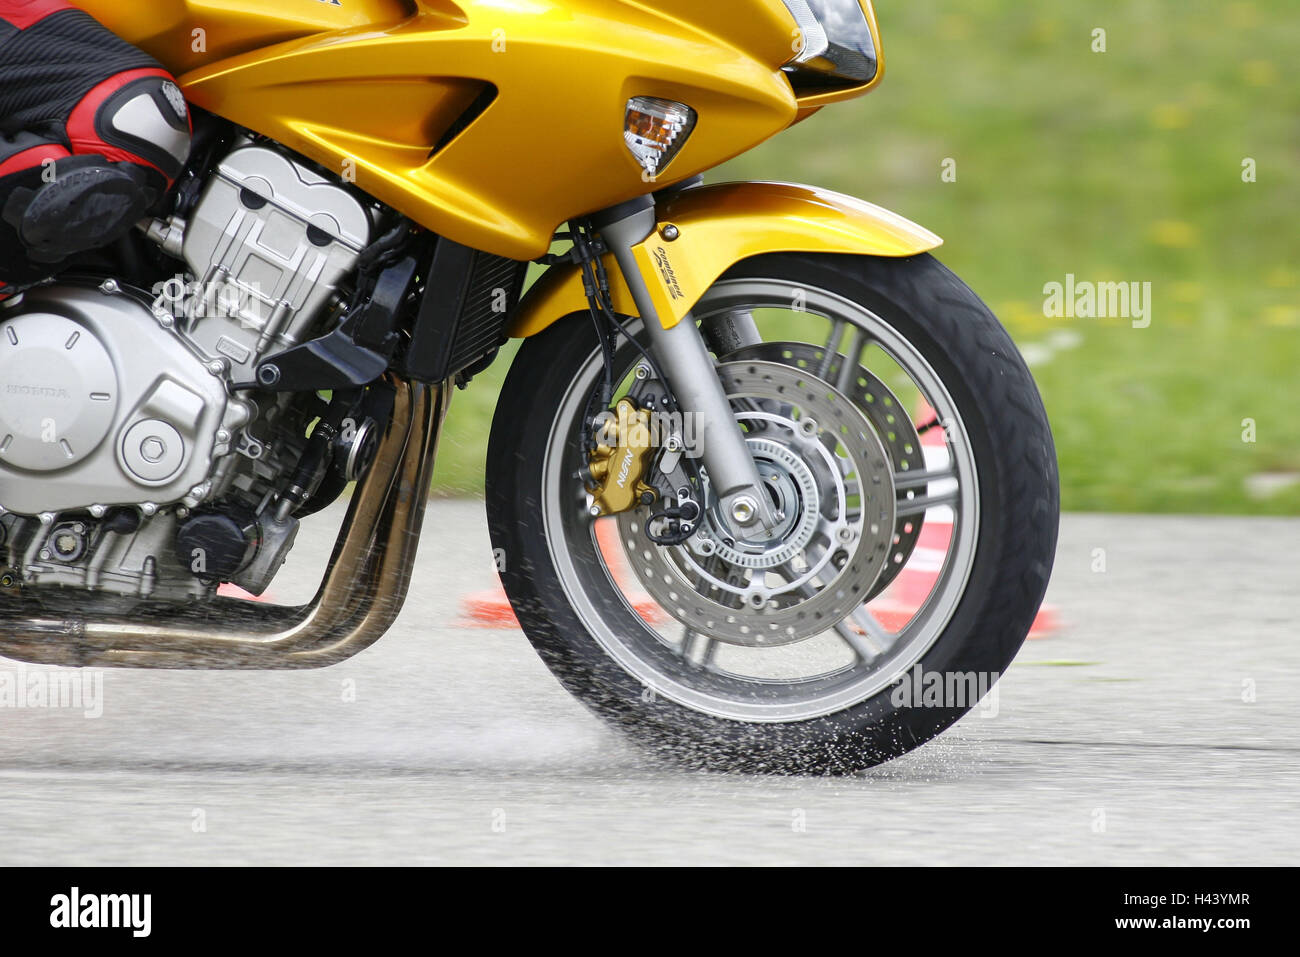 Motorcycle, journey, street, brake, grit, ABS test, detail, front wheel, - Stock Image